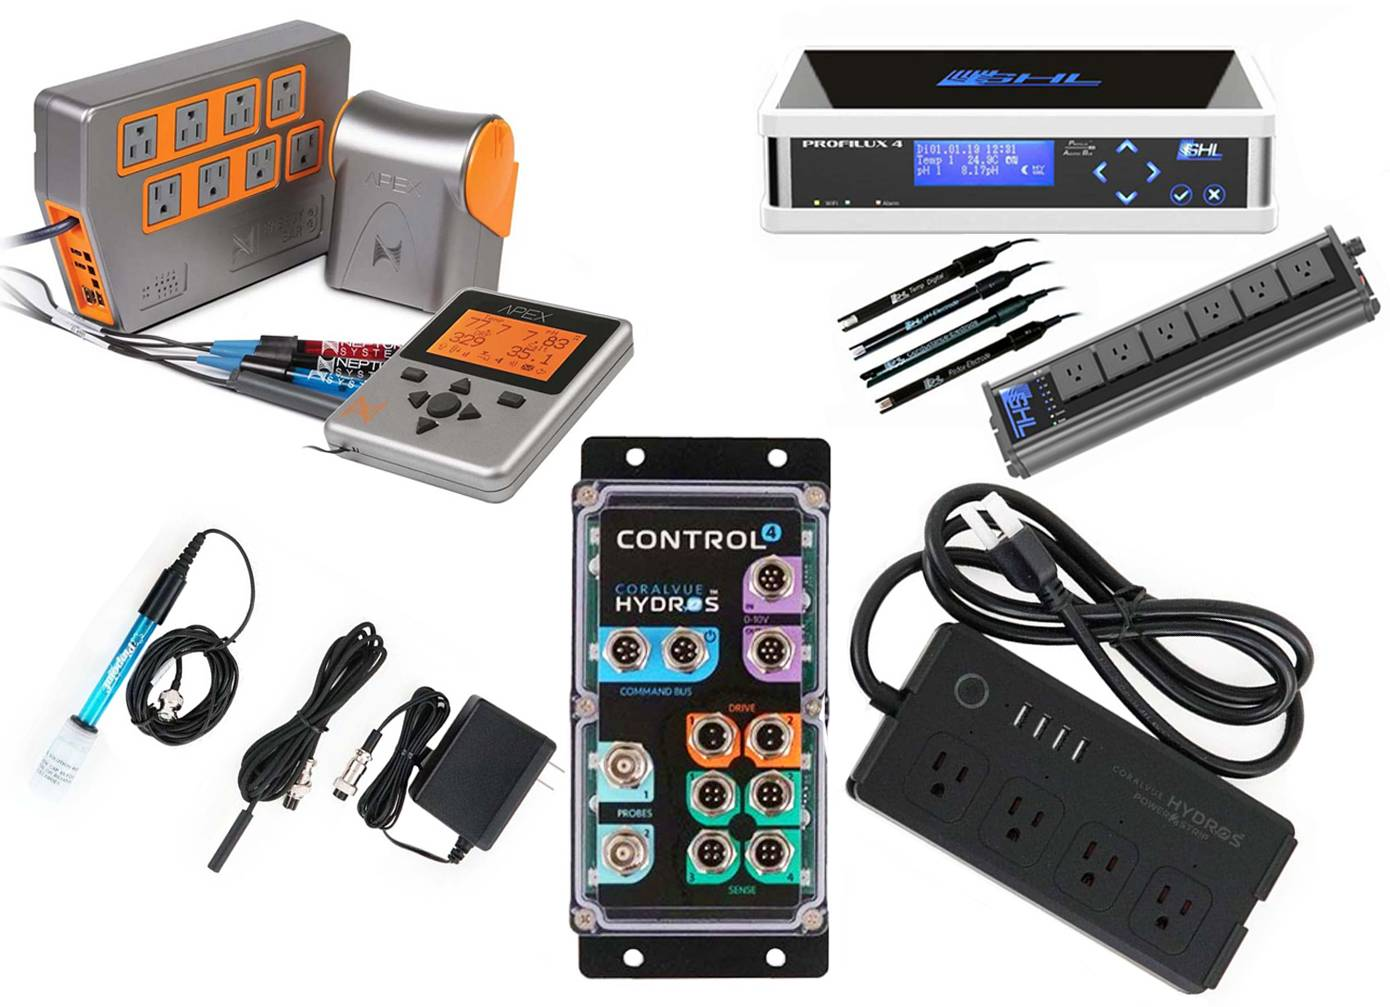 controllers that can help monitor and notify you if there are problems with the aquarium while you're on vacation